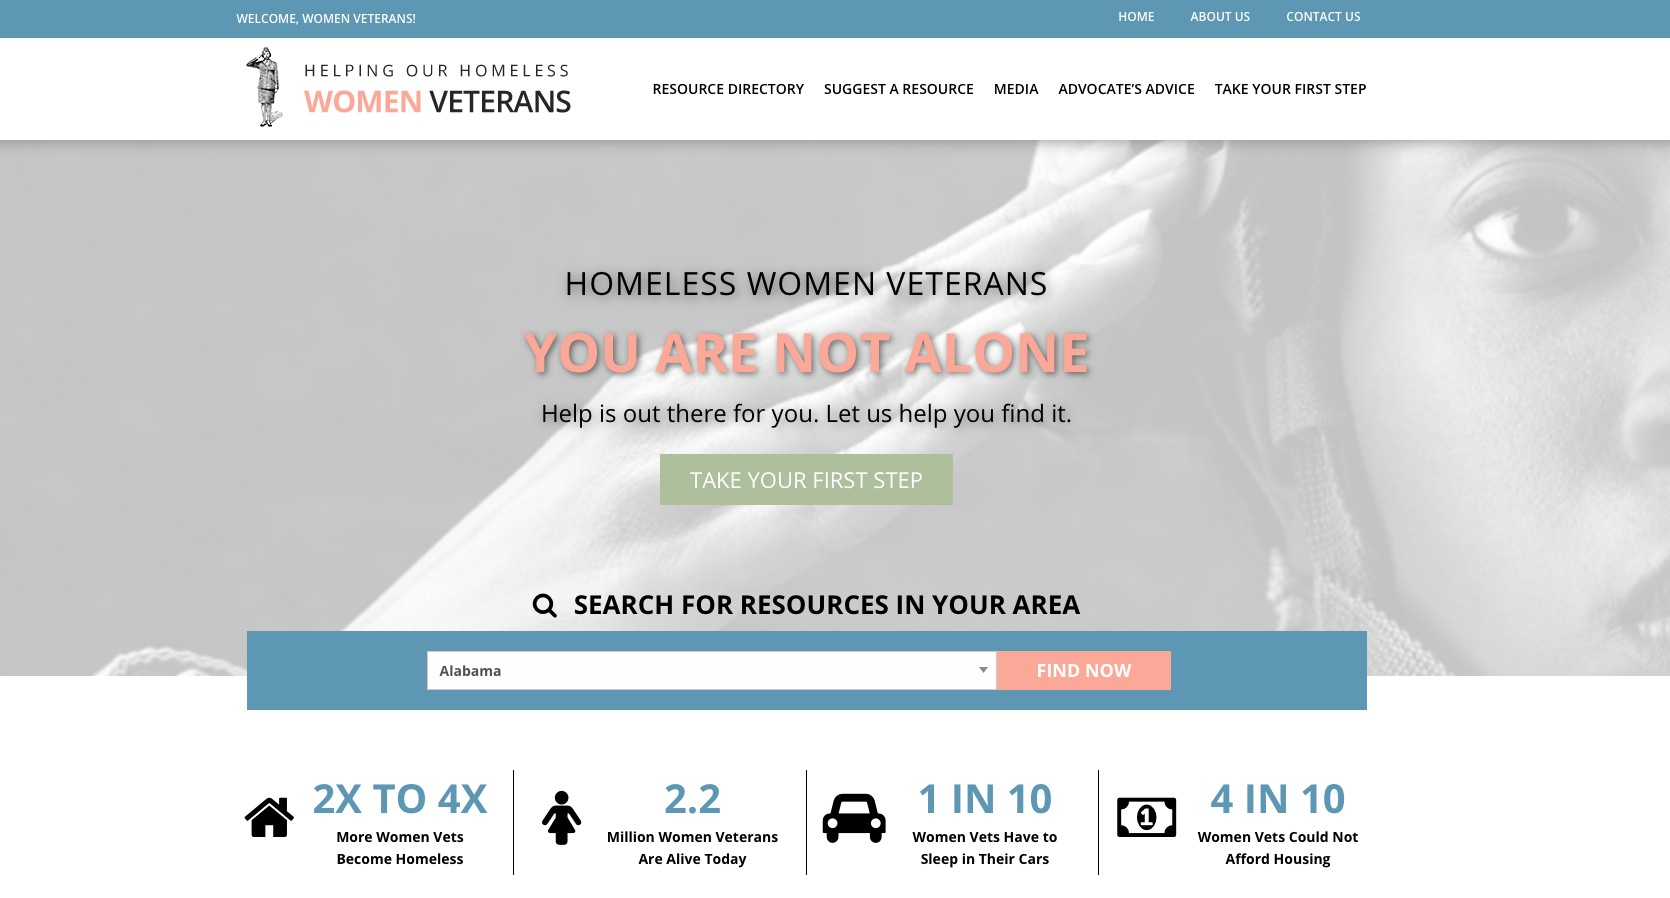 Homeless Women Veterans